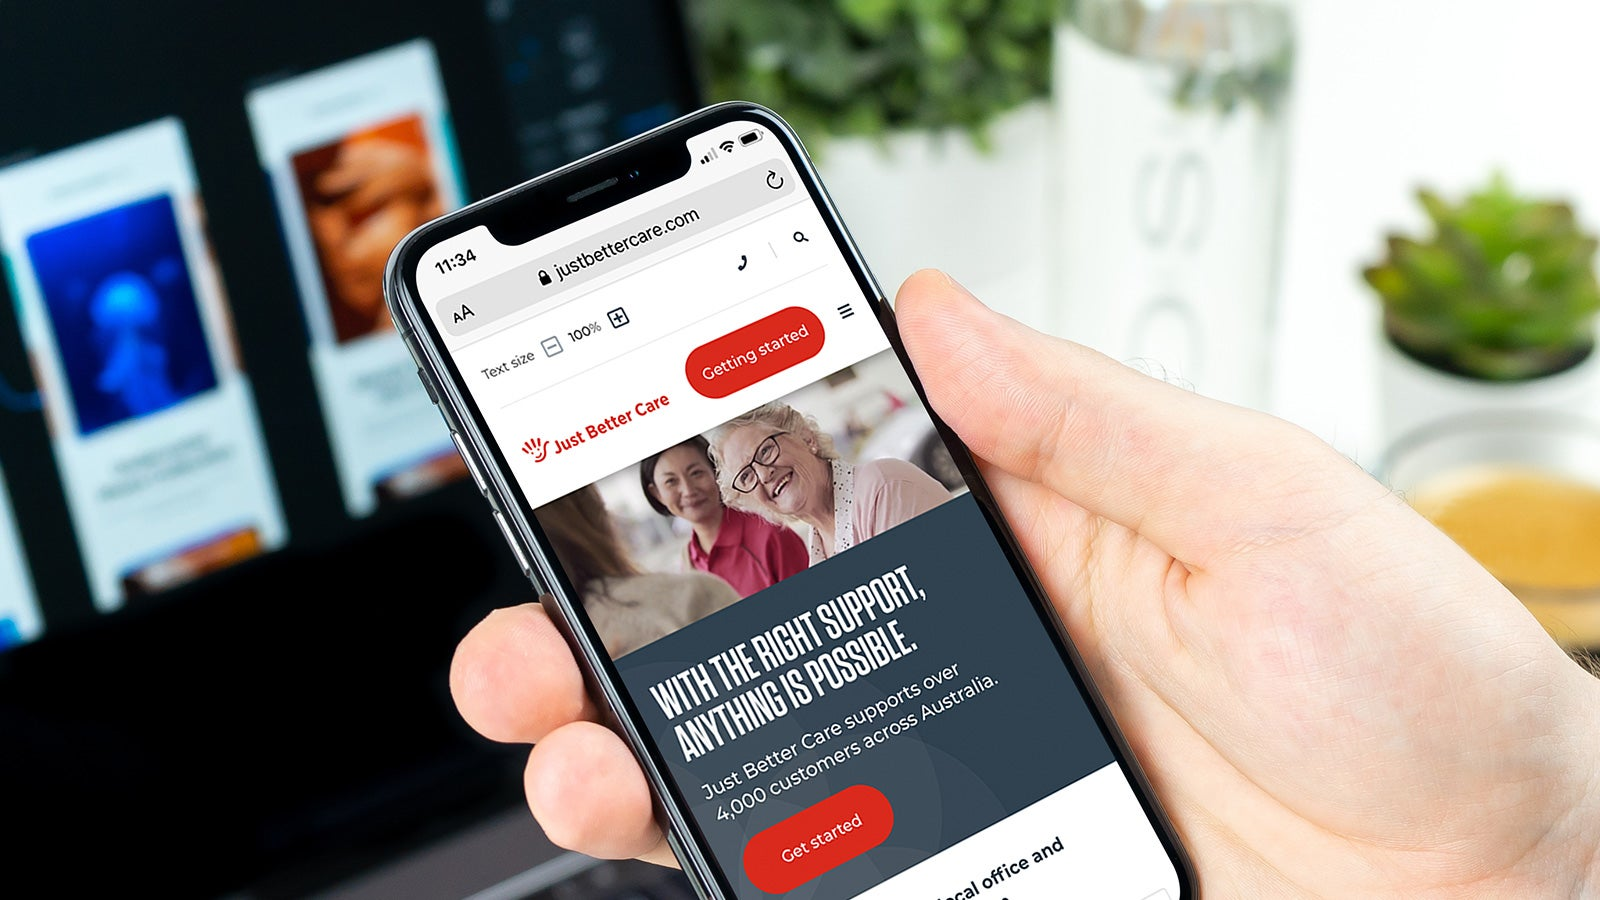 Just Better Care   website home page displayed on smartphone   Devotion